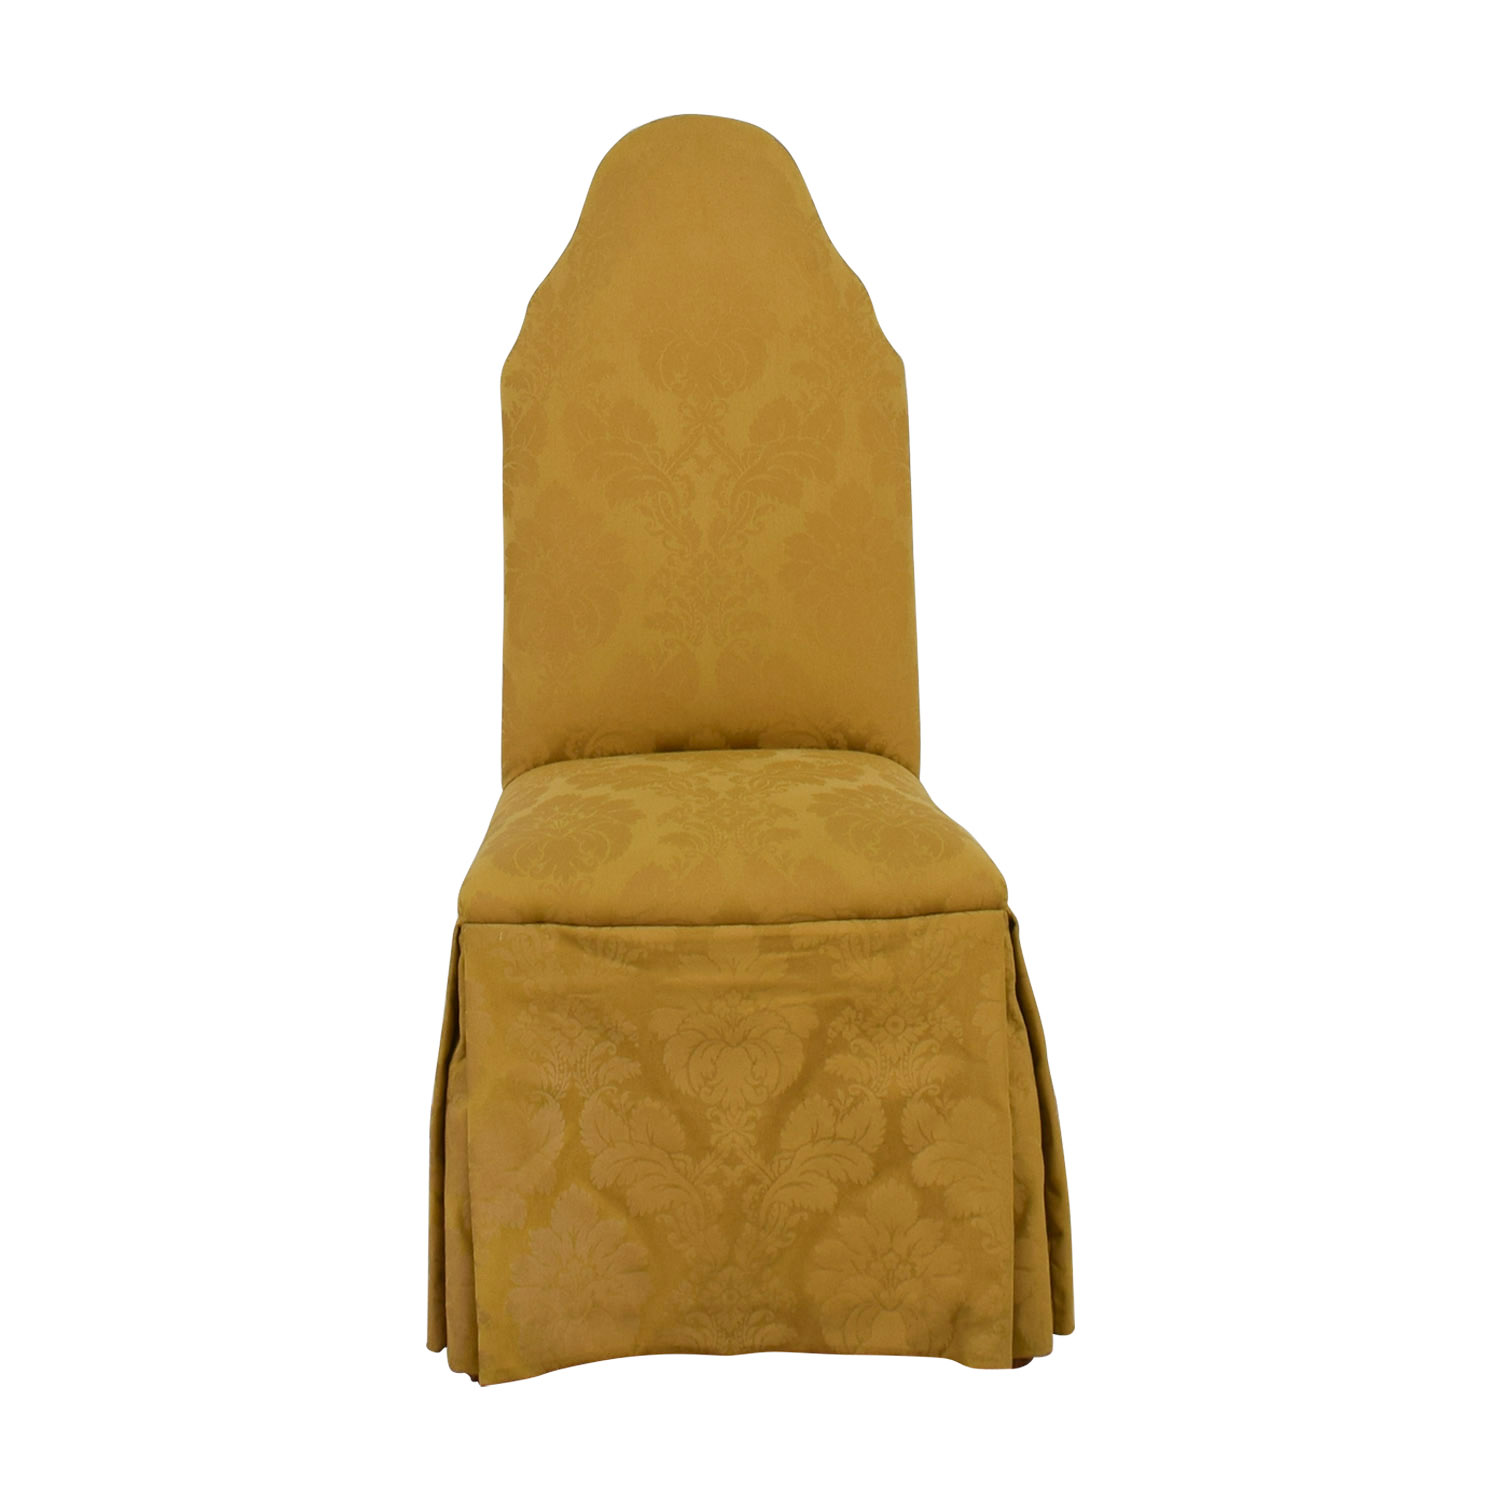 Gold Jacquard Slipcovered Chair